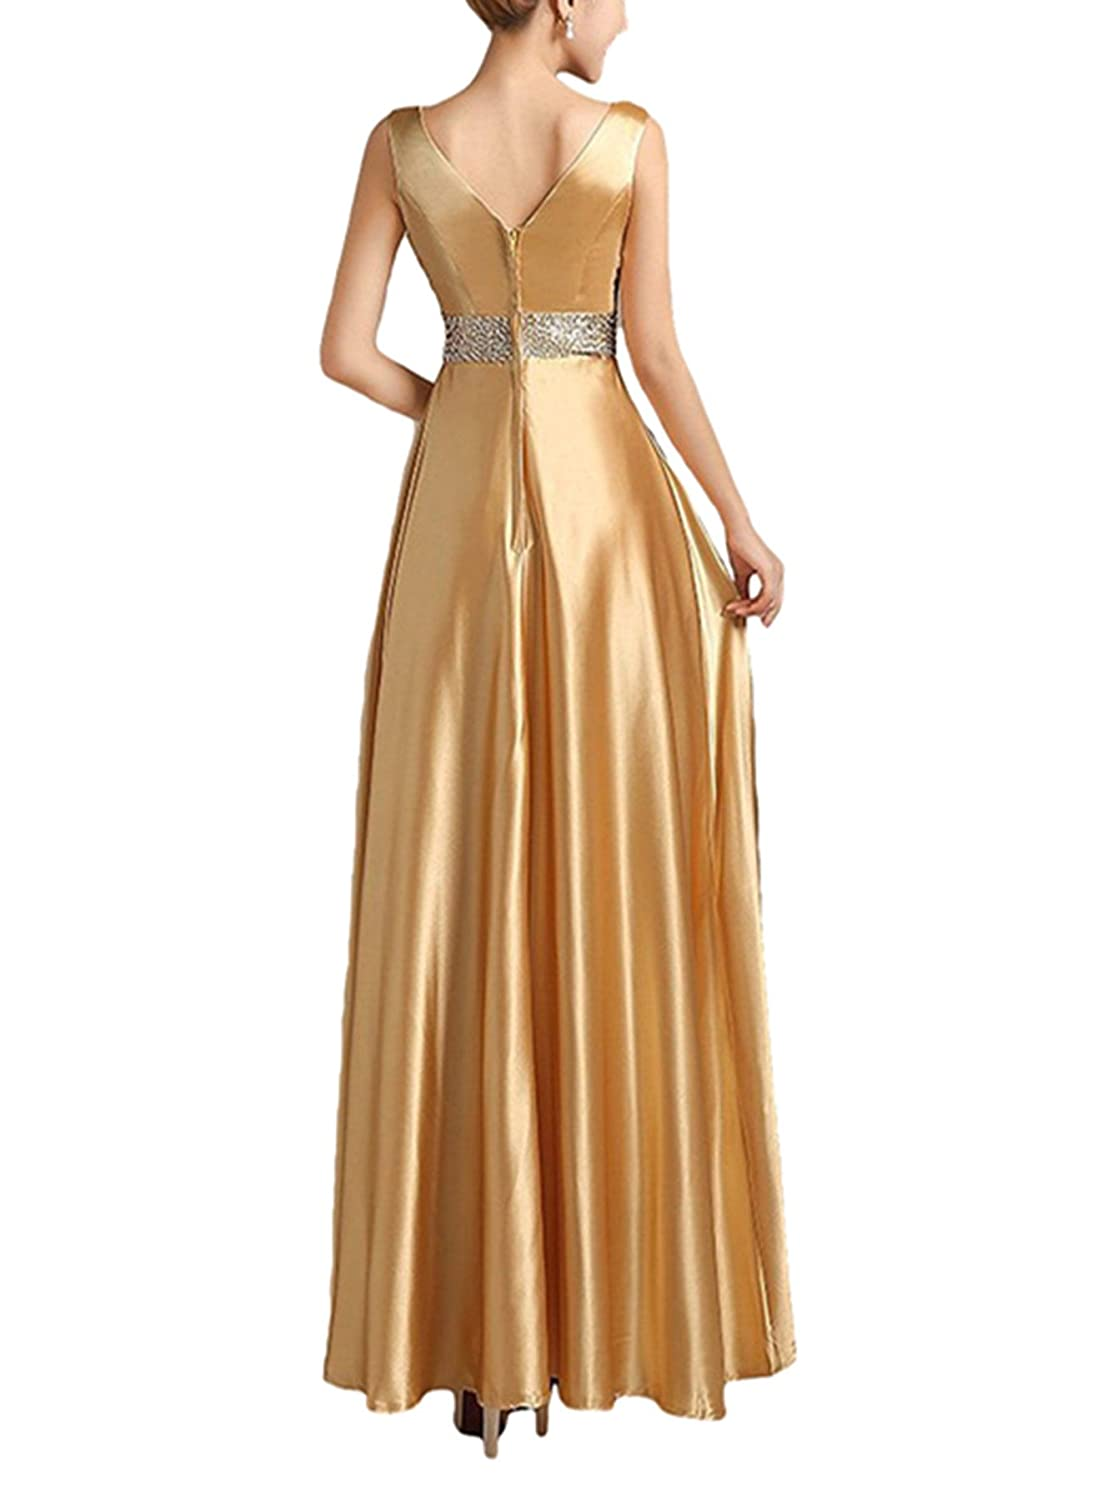 LIMATRY Women Long Section of The Bride Wedding Toast Dress Bridesmaid Dress